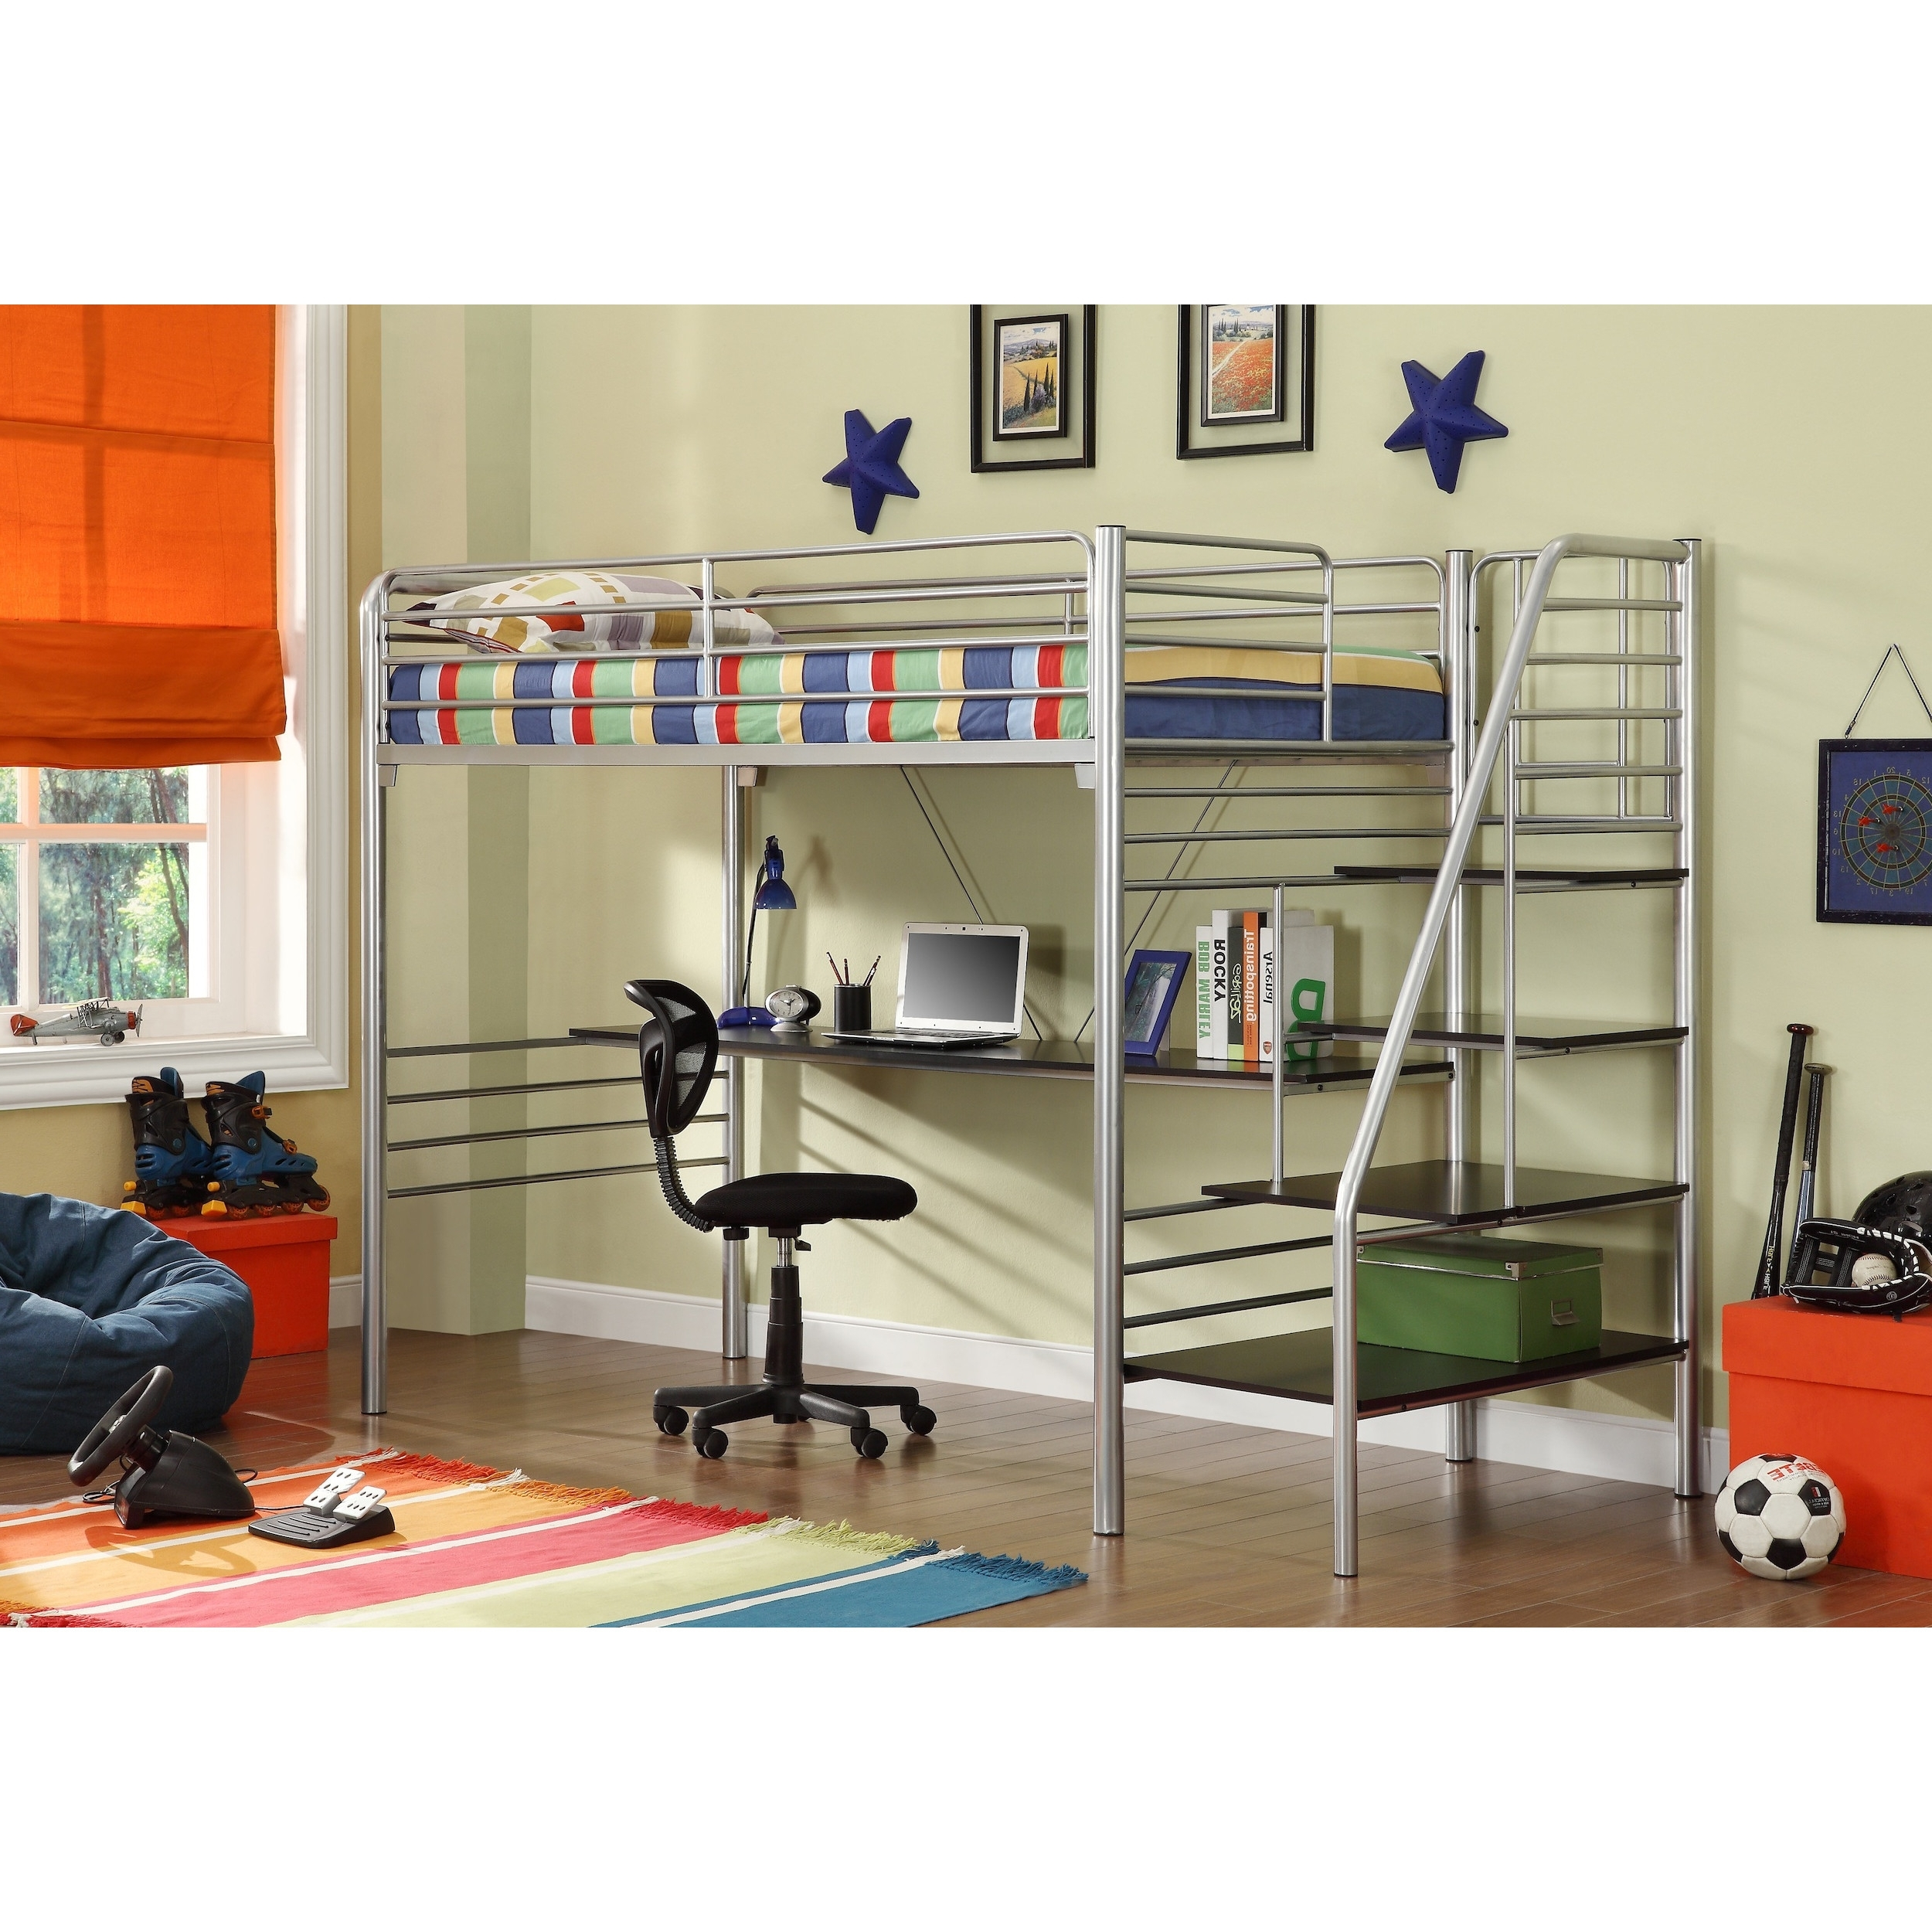 Furniture Stores Matthews Nc | Rooms to Go Outlet Arlington Tx | Kidsroomstogo